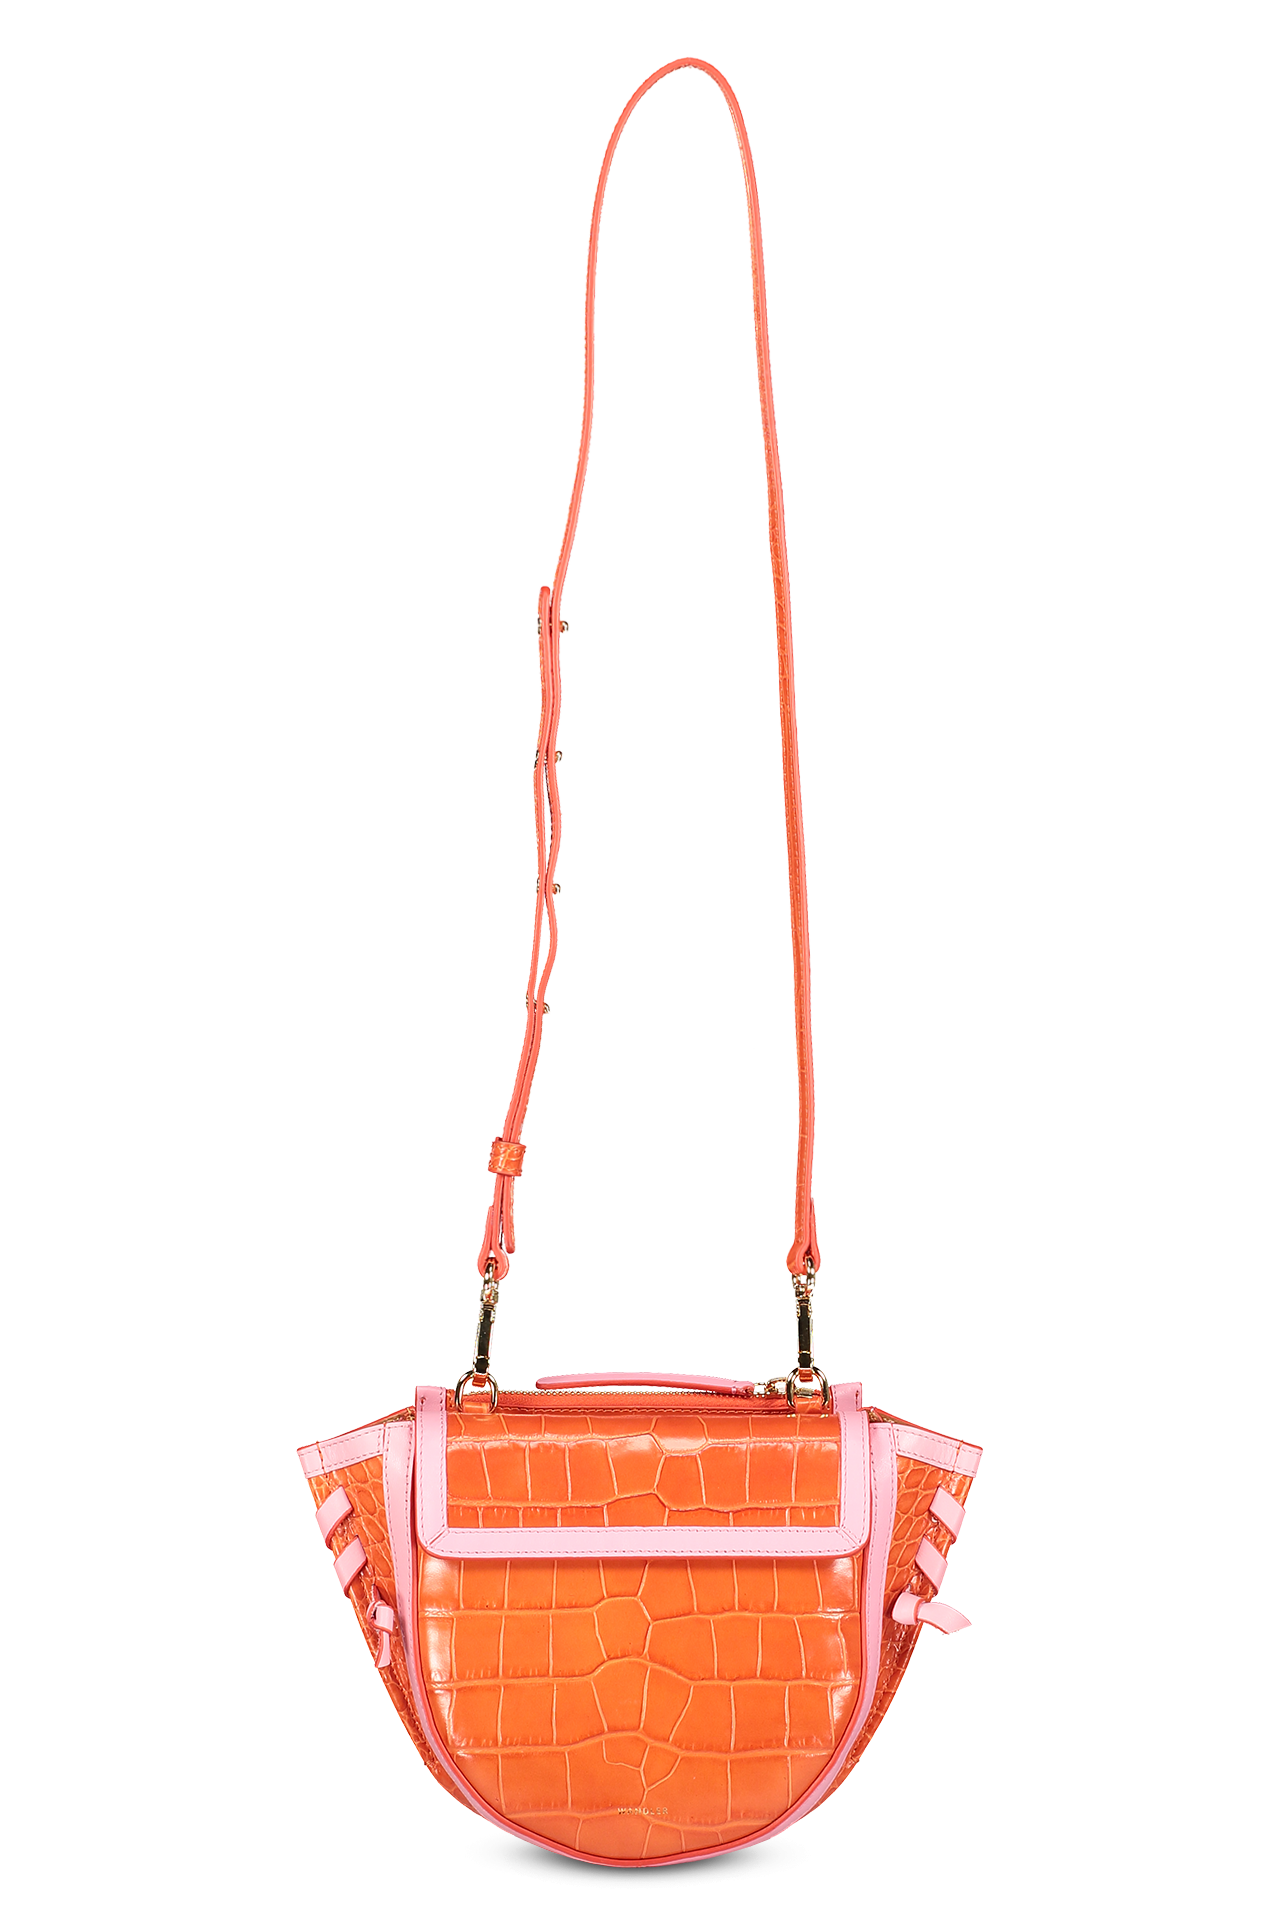 Front view image of Wandler Hortensia Bag Mini Croco Calf Leather with strap